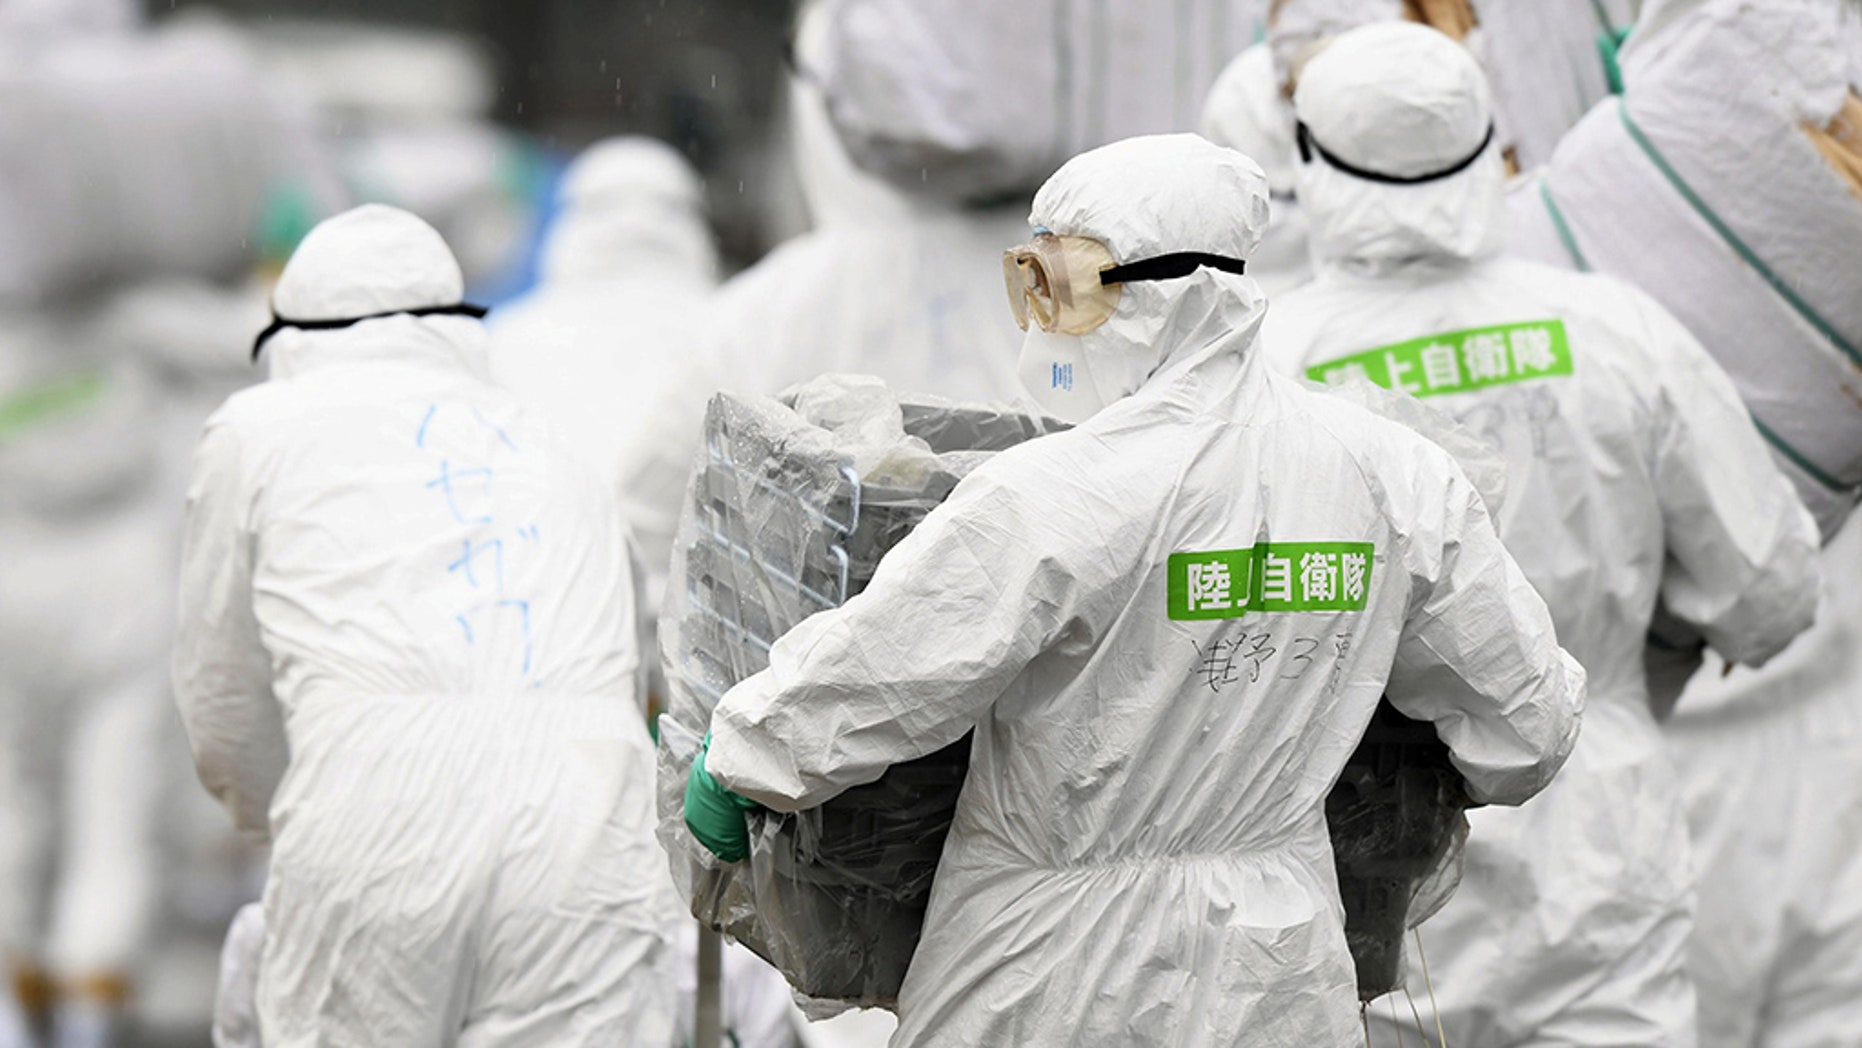 Members of the Japan Self-Defense Forces (JSDF) undergo a quarantine operation at a hog farm after an outbreak of swine fever was detected, in Toyota, Aichi Prefecture, Japan.